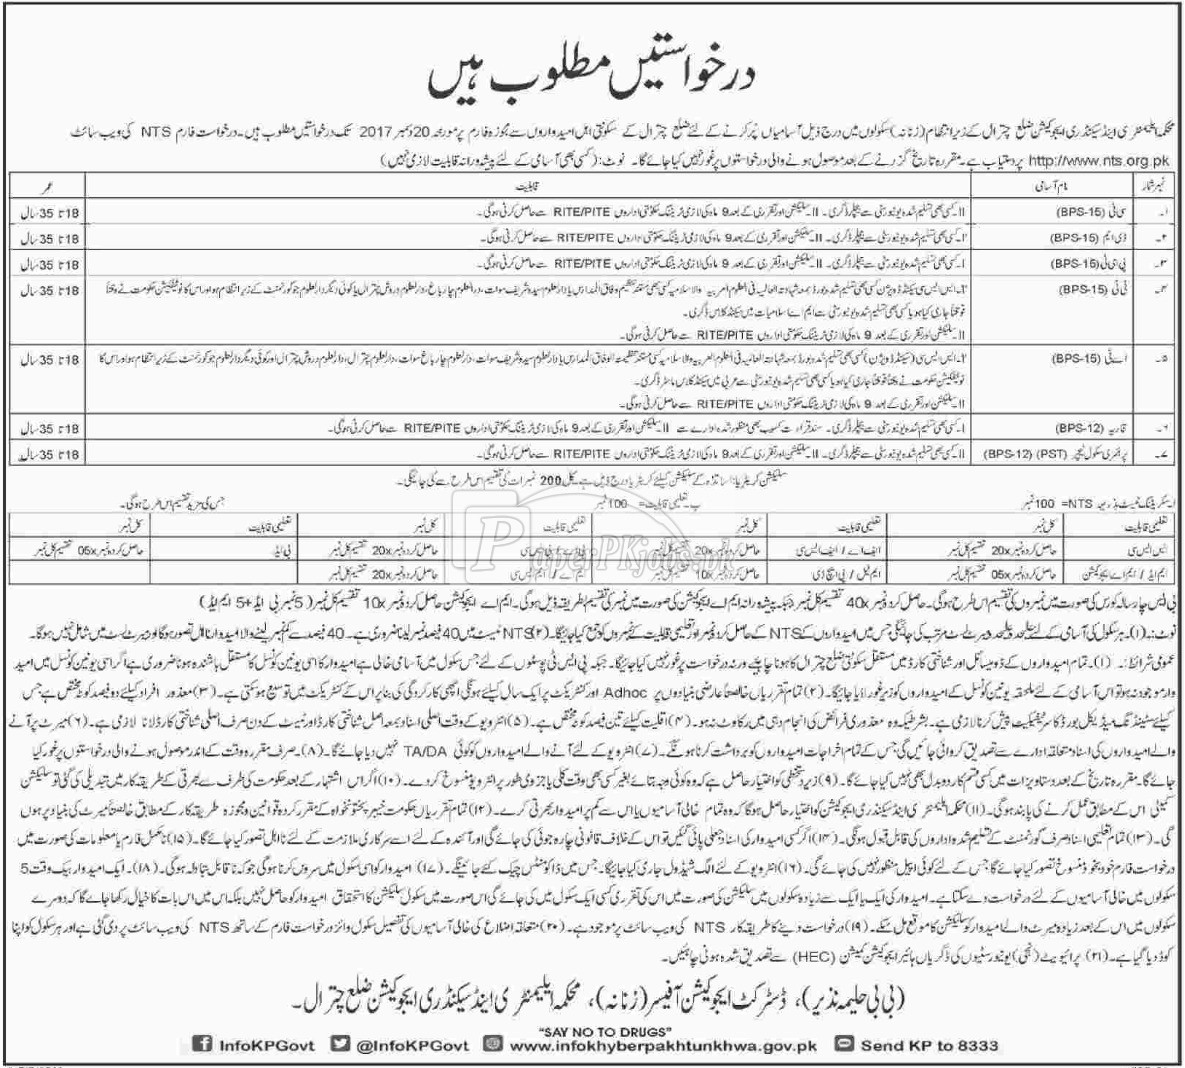 Elementary & Secondary Education Department ESED Chitral NTS Jobs 2017